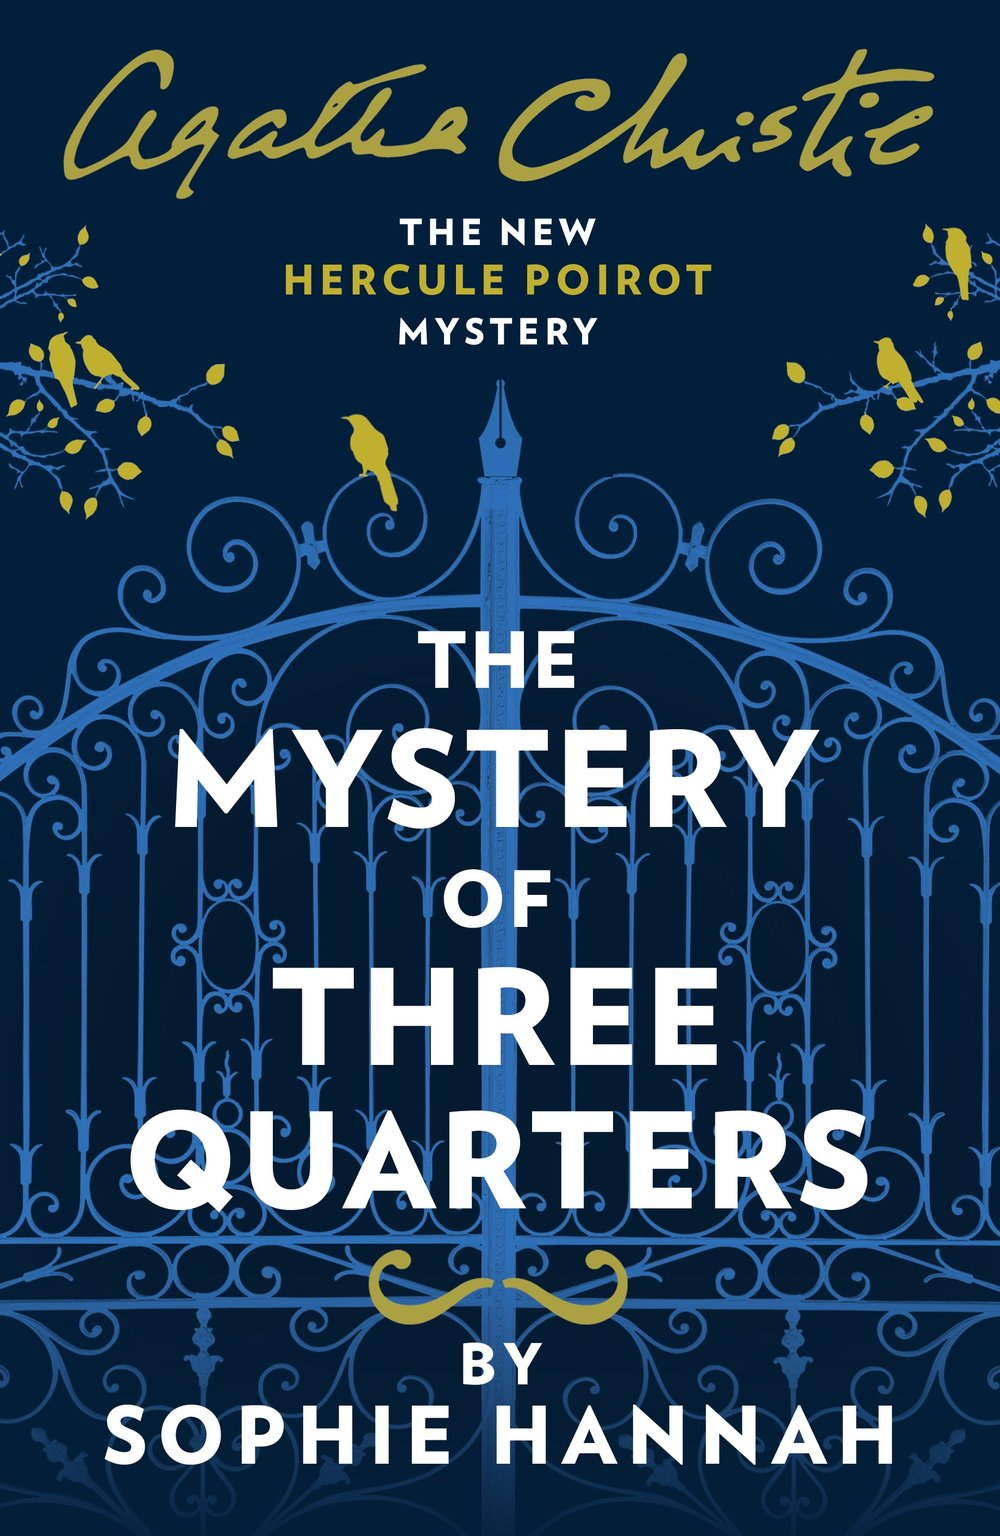 S Hannah Mystery of Three Quarters cover.jpg